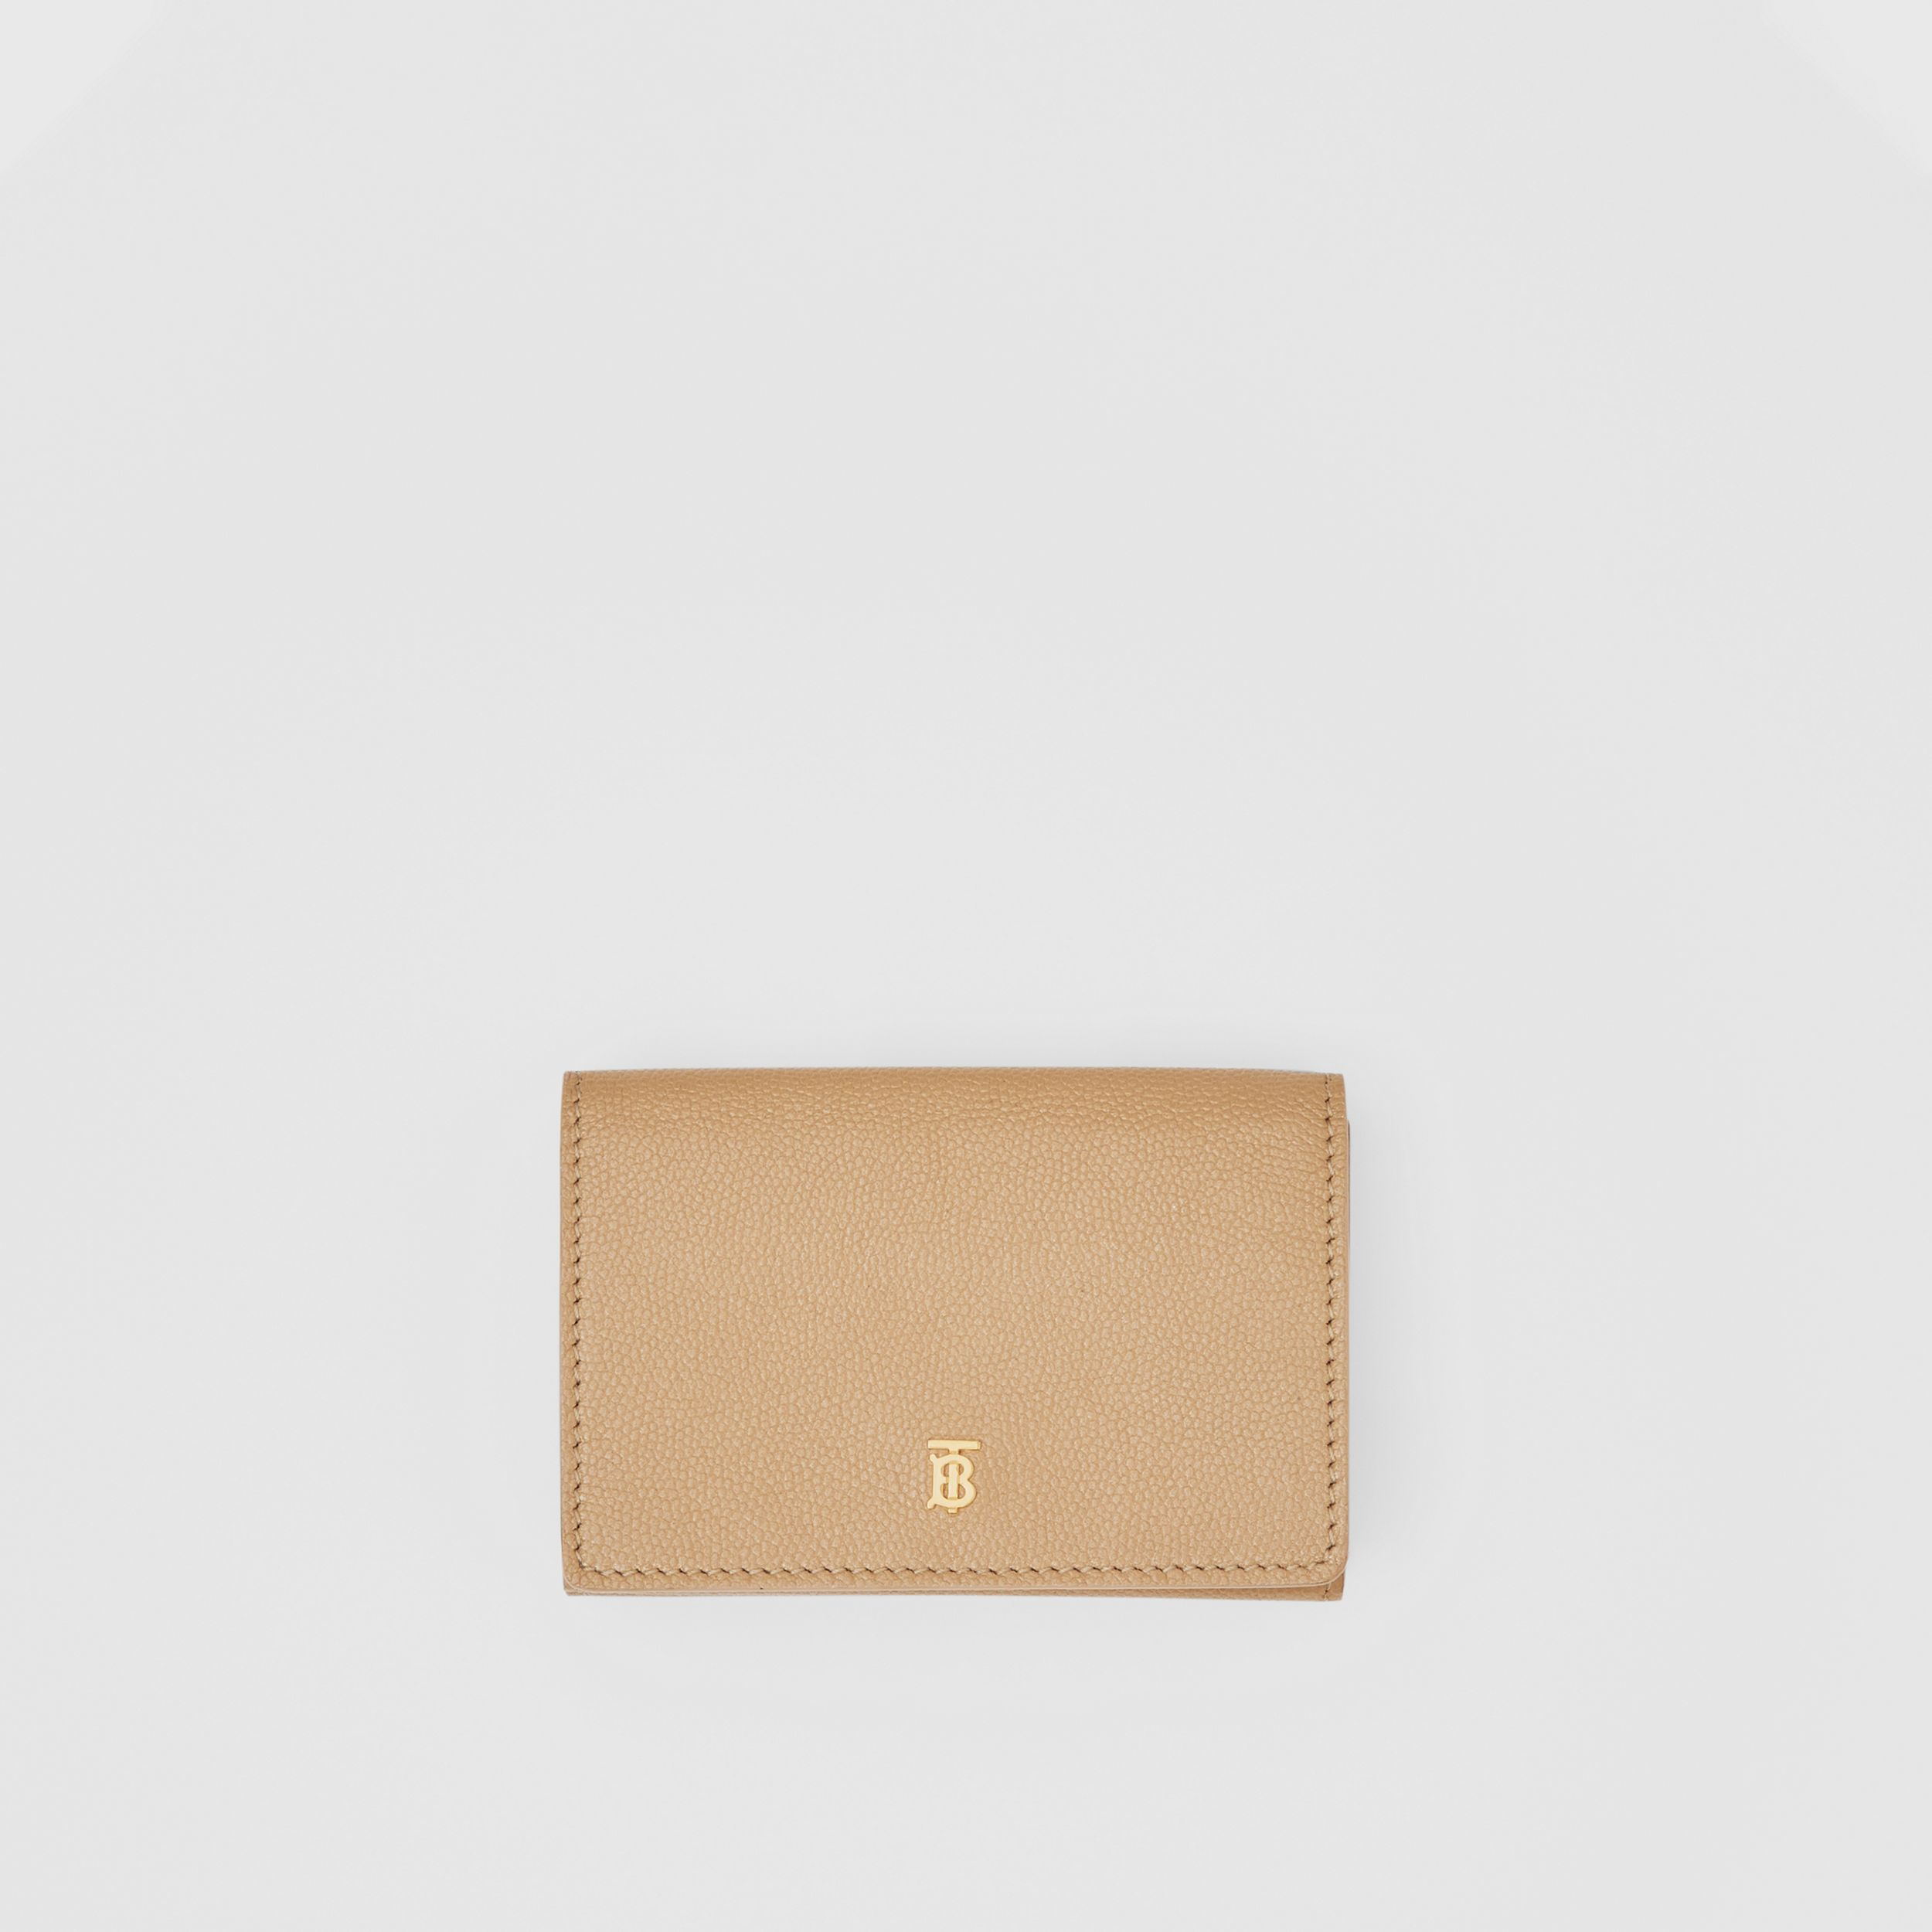 Small Grainy Leather Folding Wallet in Archive Beige - Women | Burberry Australia - 1